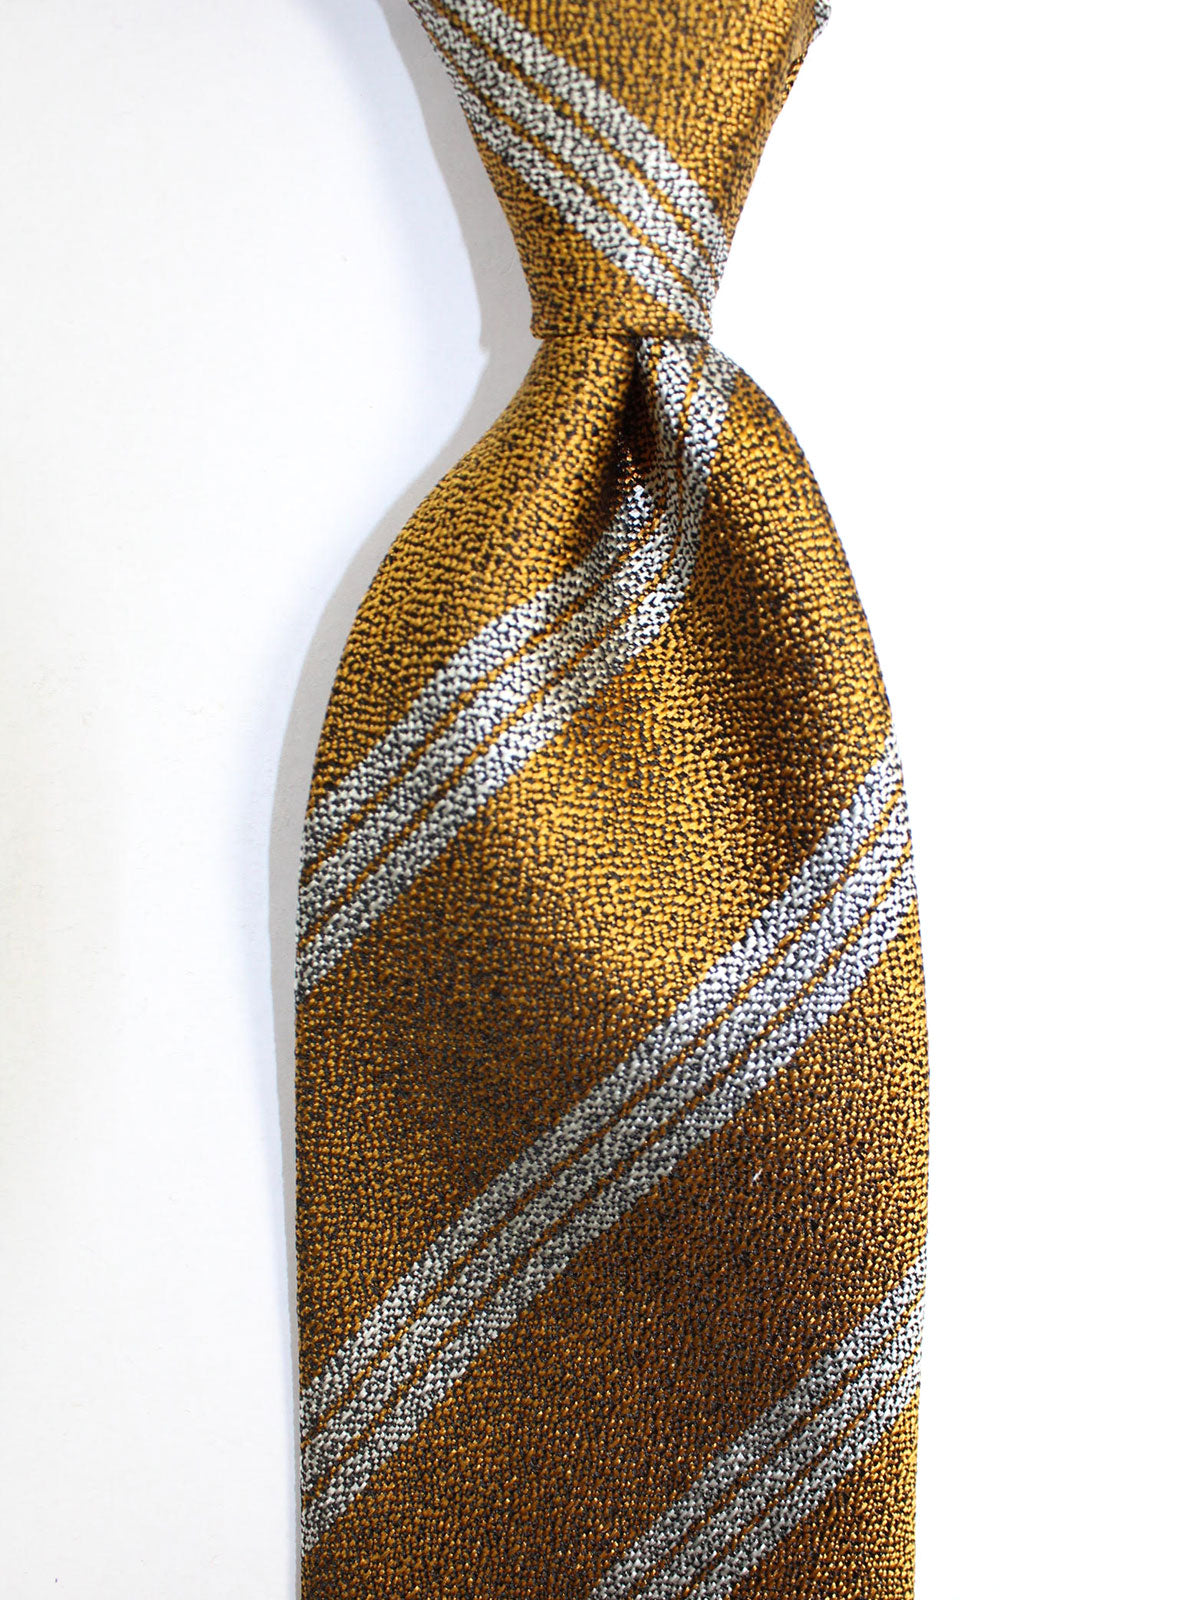 Tom Ford Silk Tie Mustard Stripes Design